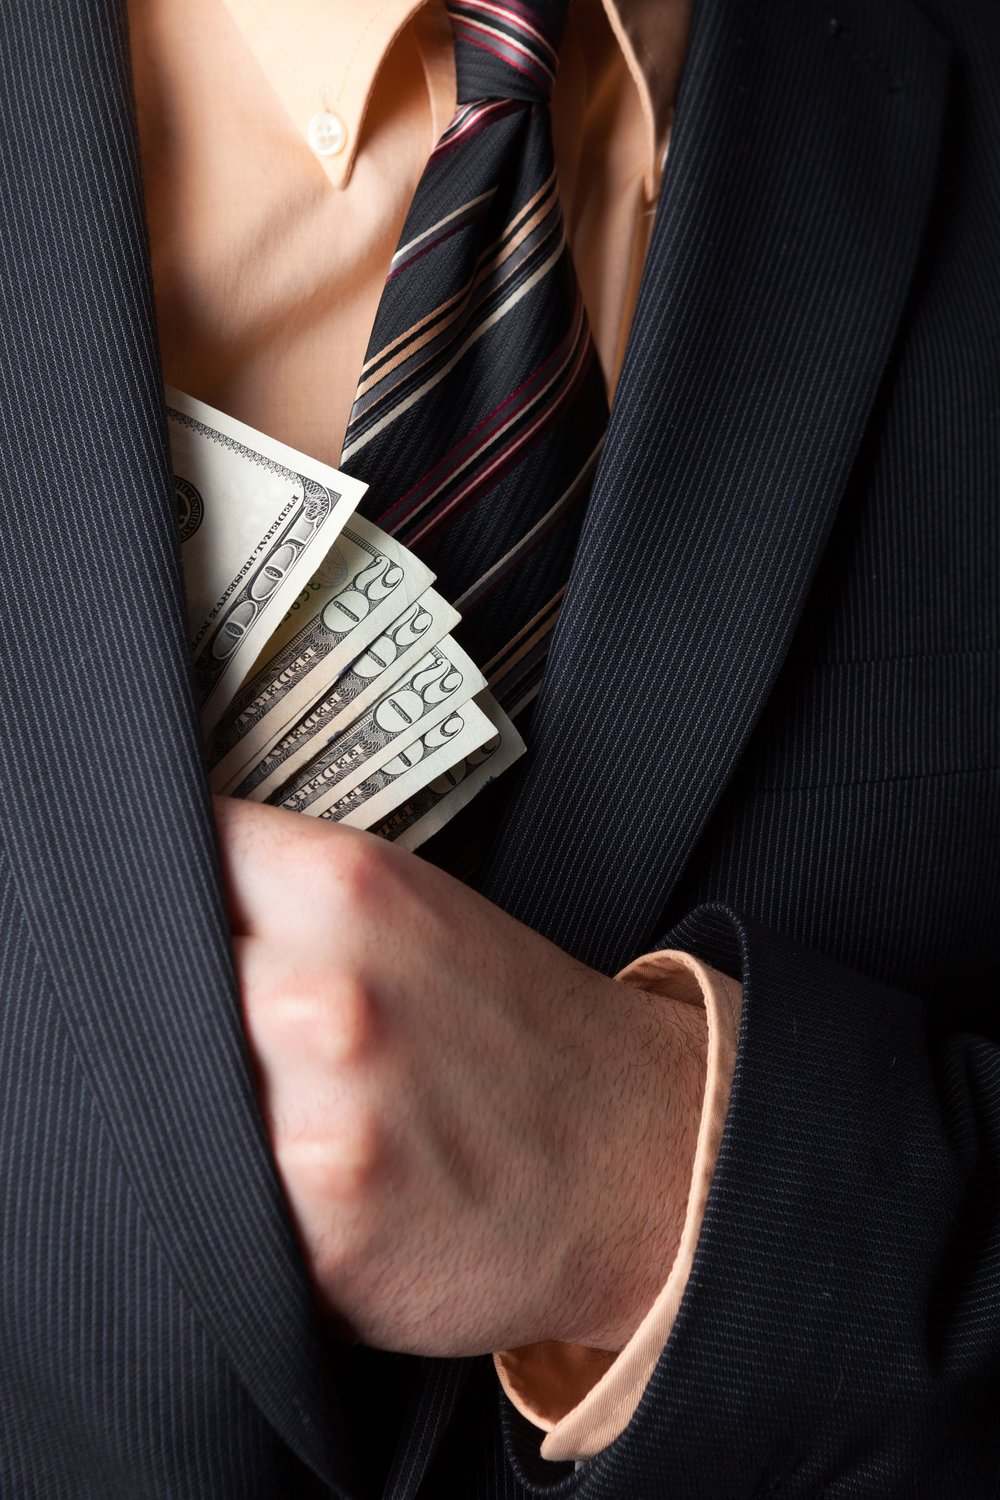 close-up-of-a-business-mans-hand-hiding-money-in-his-suit-jacket-pocket_HtgbyuvCBi-sm.jpg